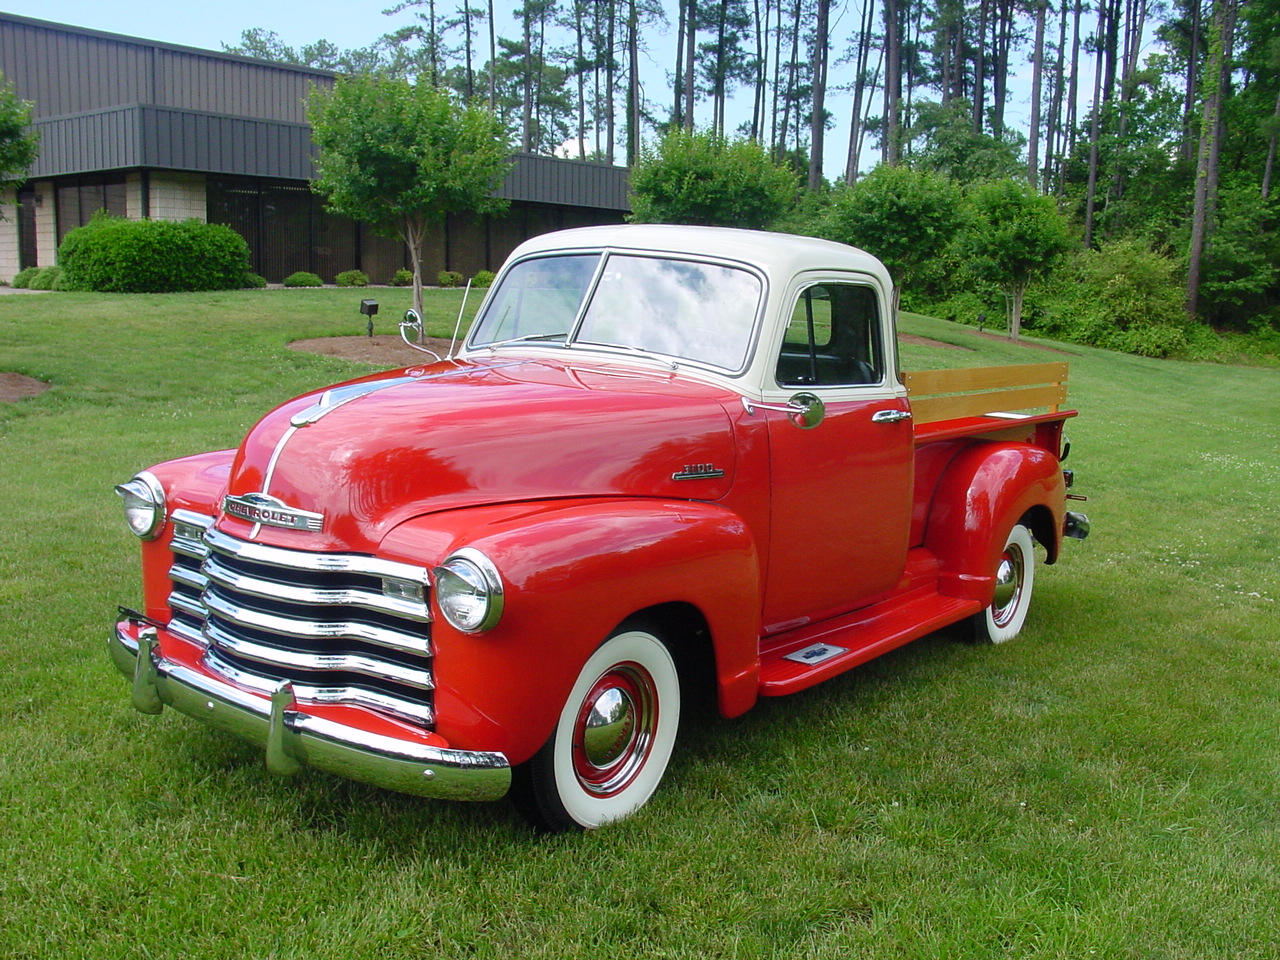 In 1948, Chevrolet unveiled a